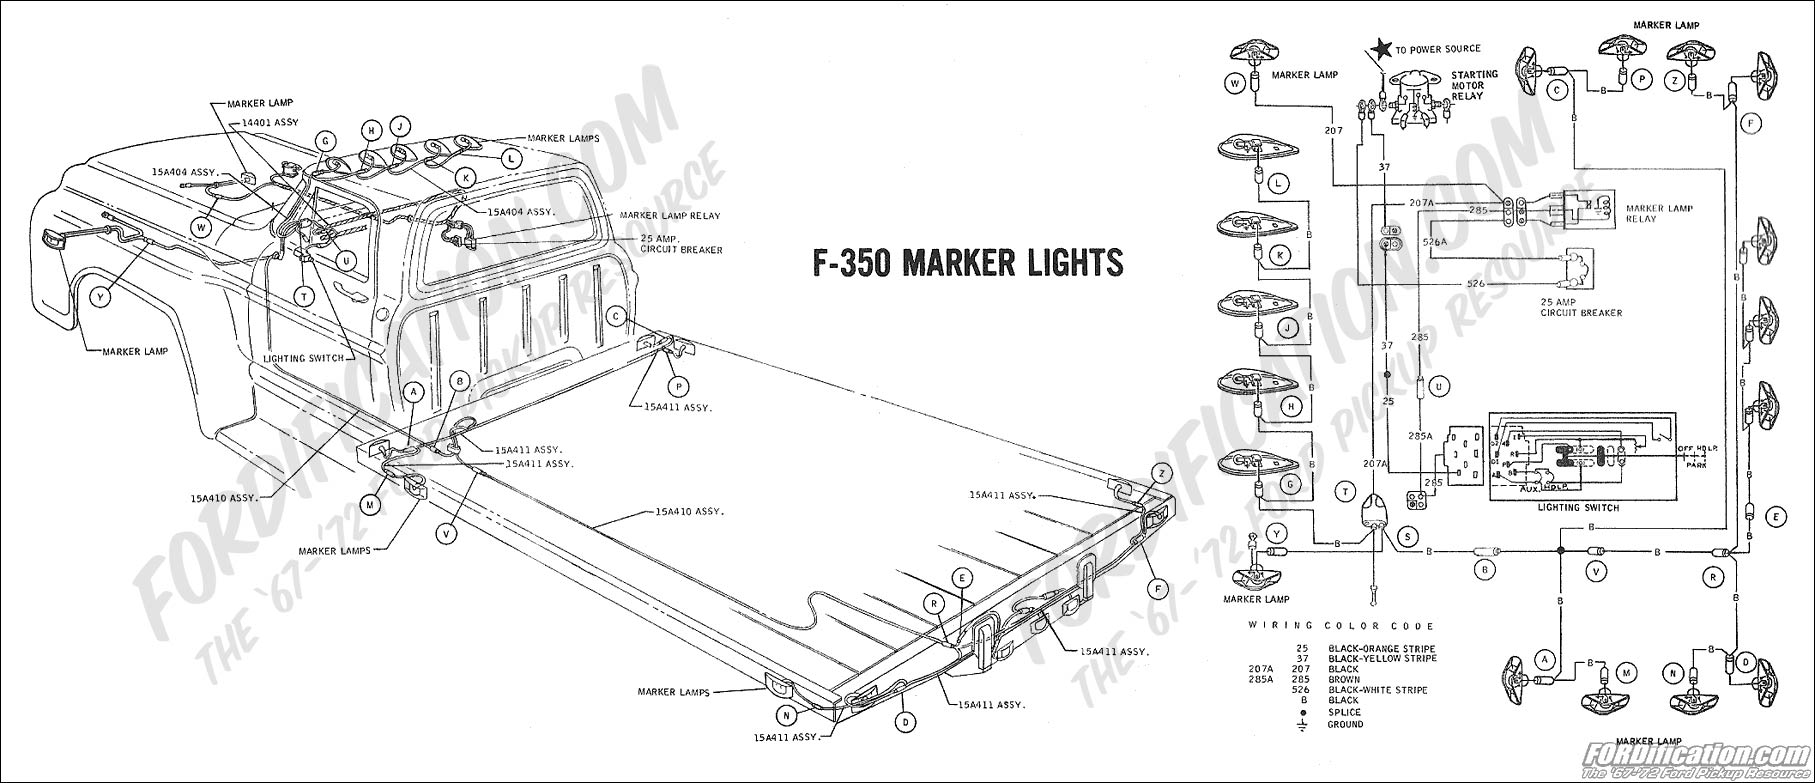 Ford F Wiring Diagram on 73 ford f250 steering, 73 ford f250 air conditioning, 73 dodge charger wiring diagram,